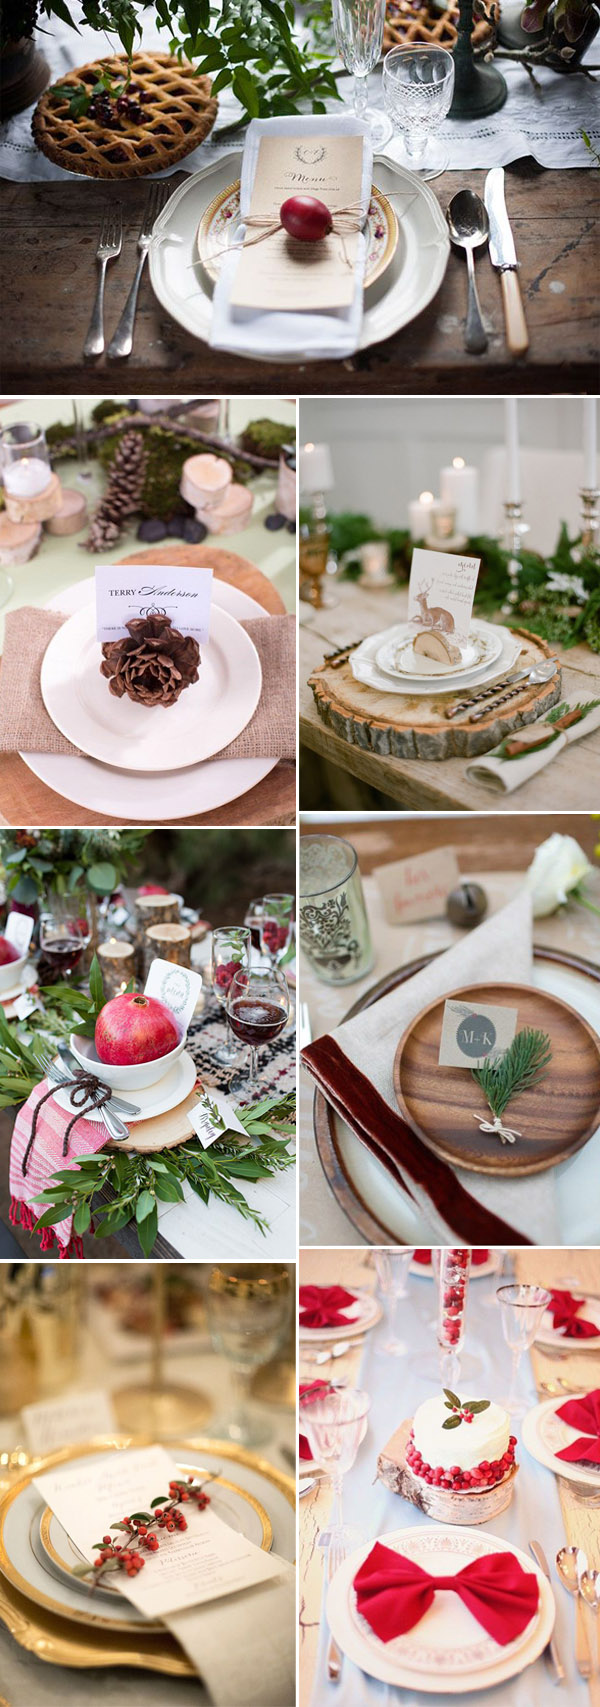 amazing winter wedding table settings with winter elements